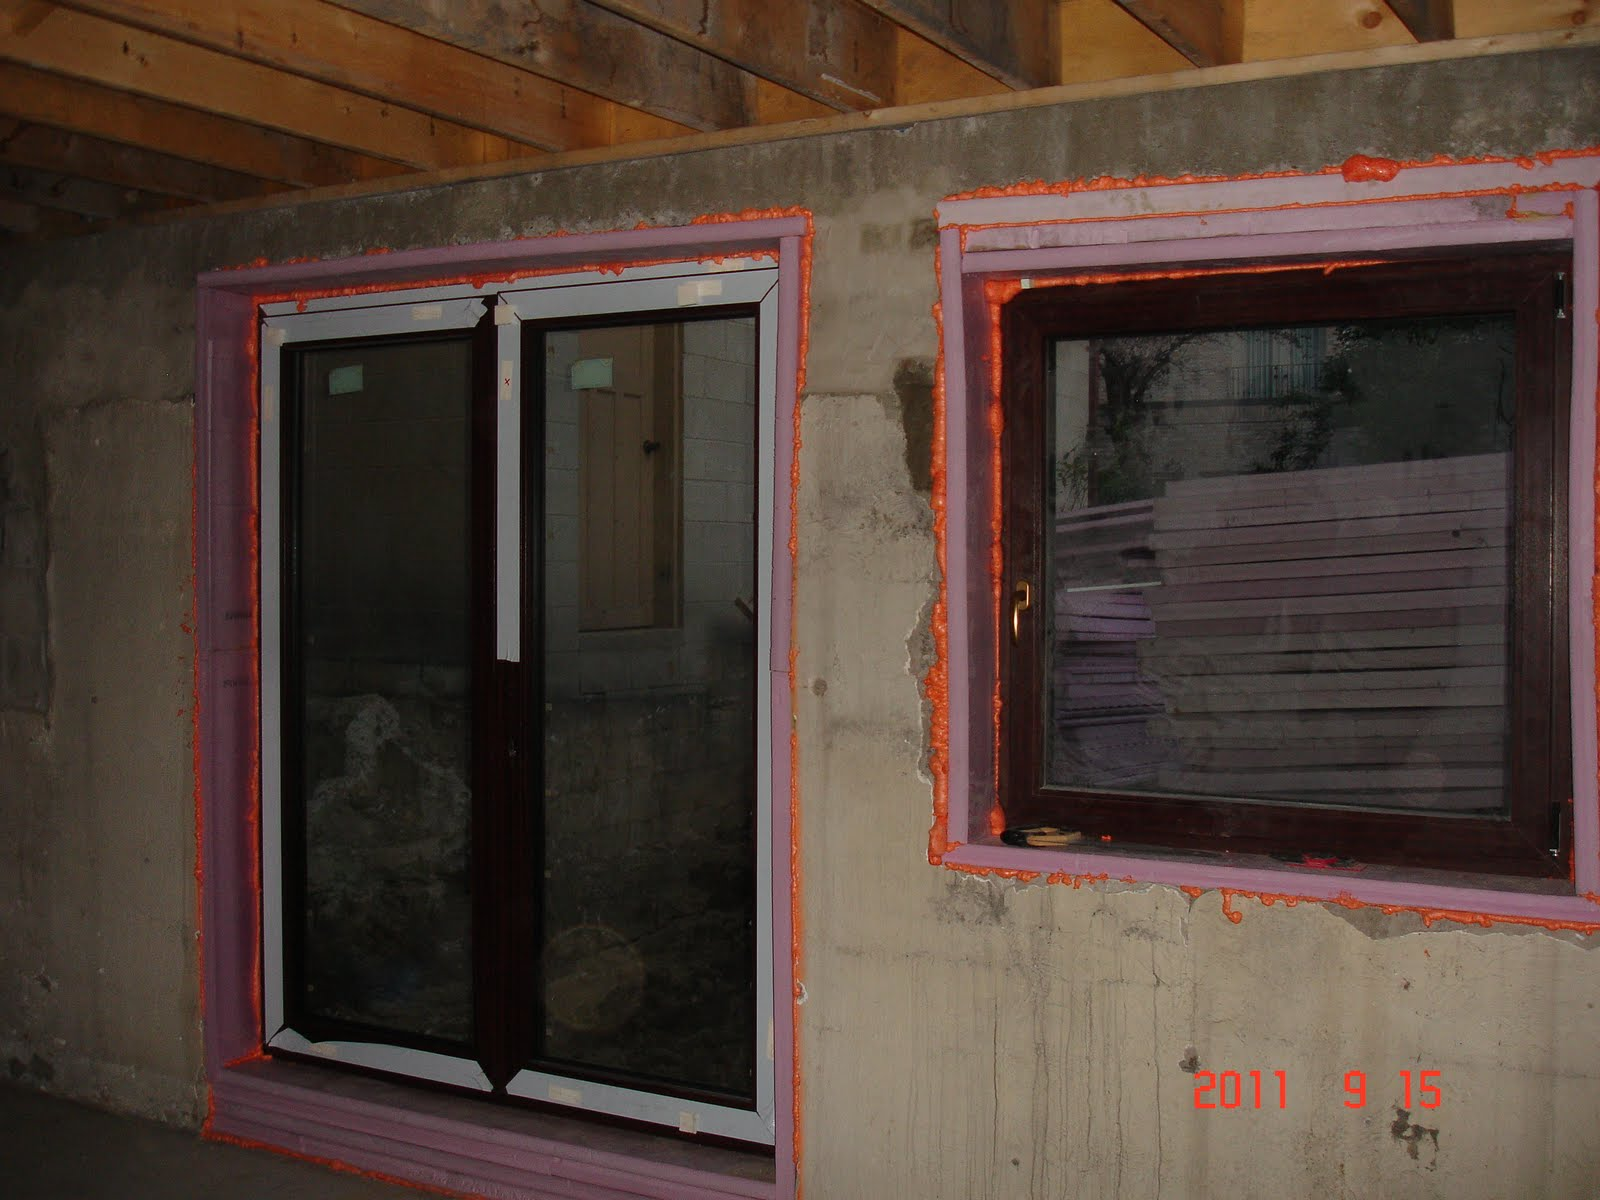 The reno coach passive house project in toronto doors and for Walkout basement windows